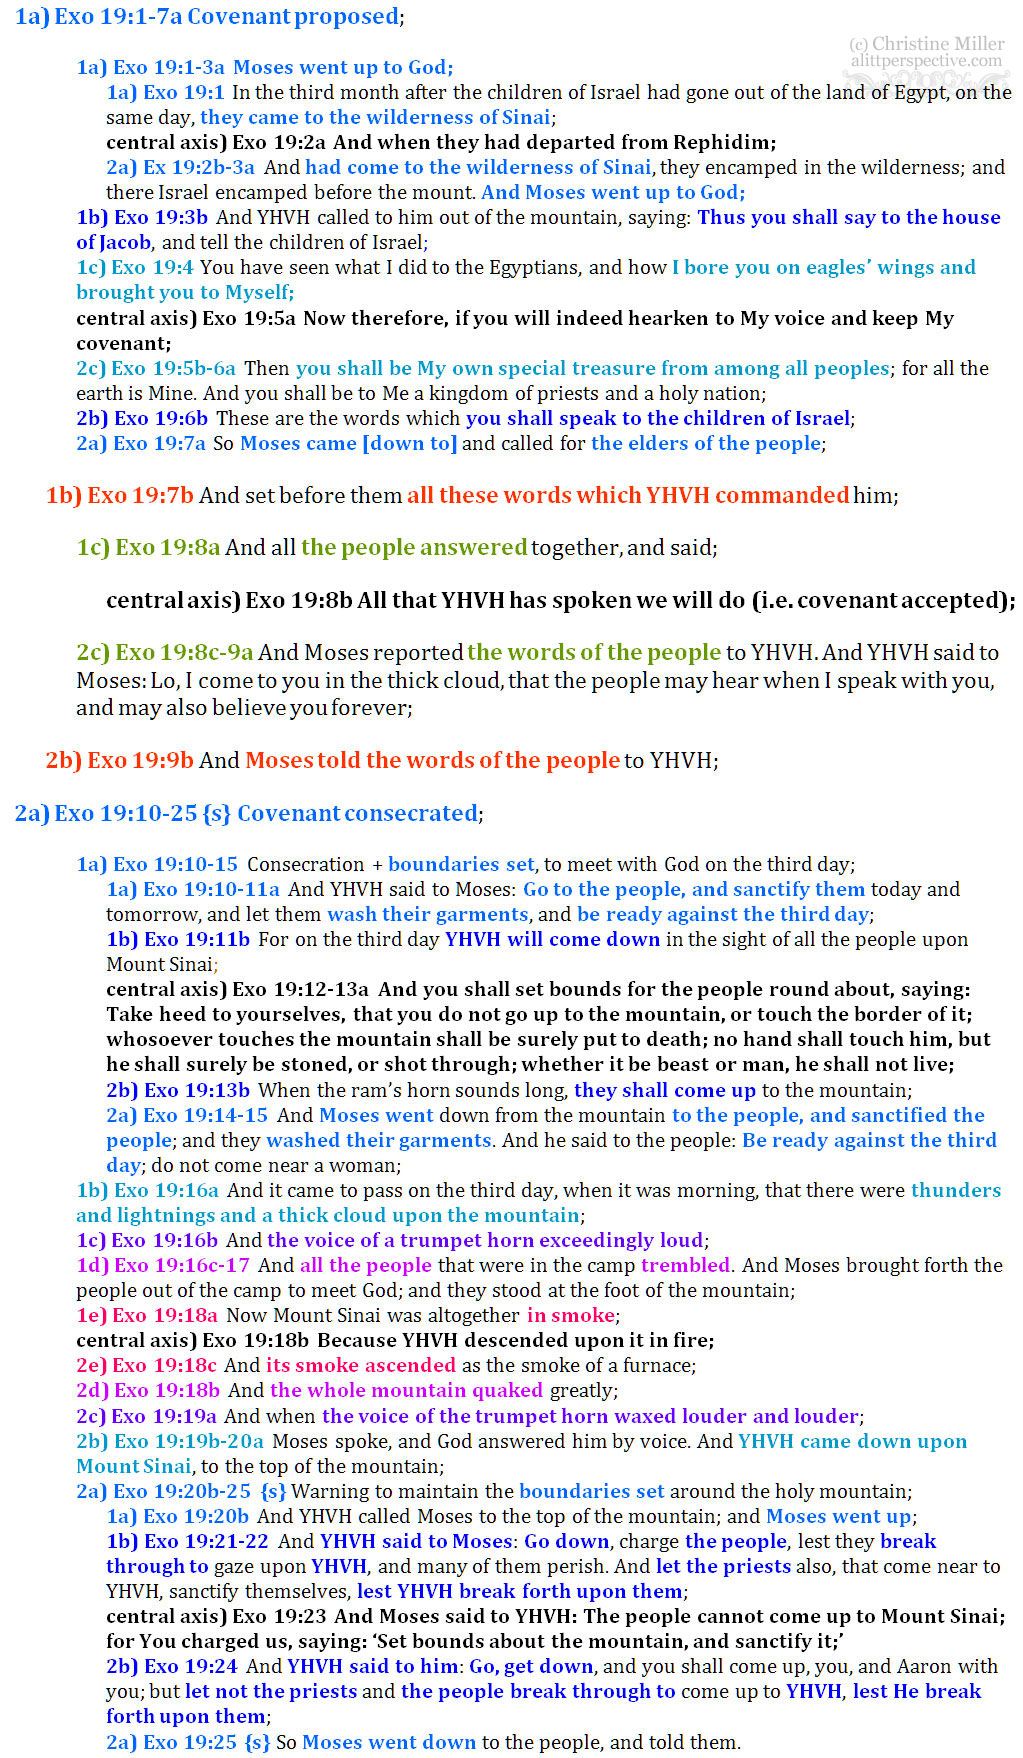 Exo 19:1-25 chiasm | christine's bible study at alittleperspective.com